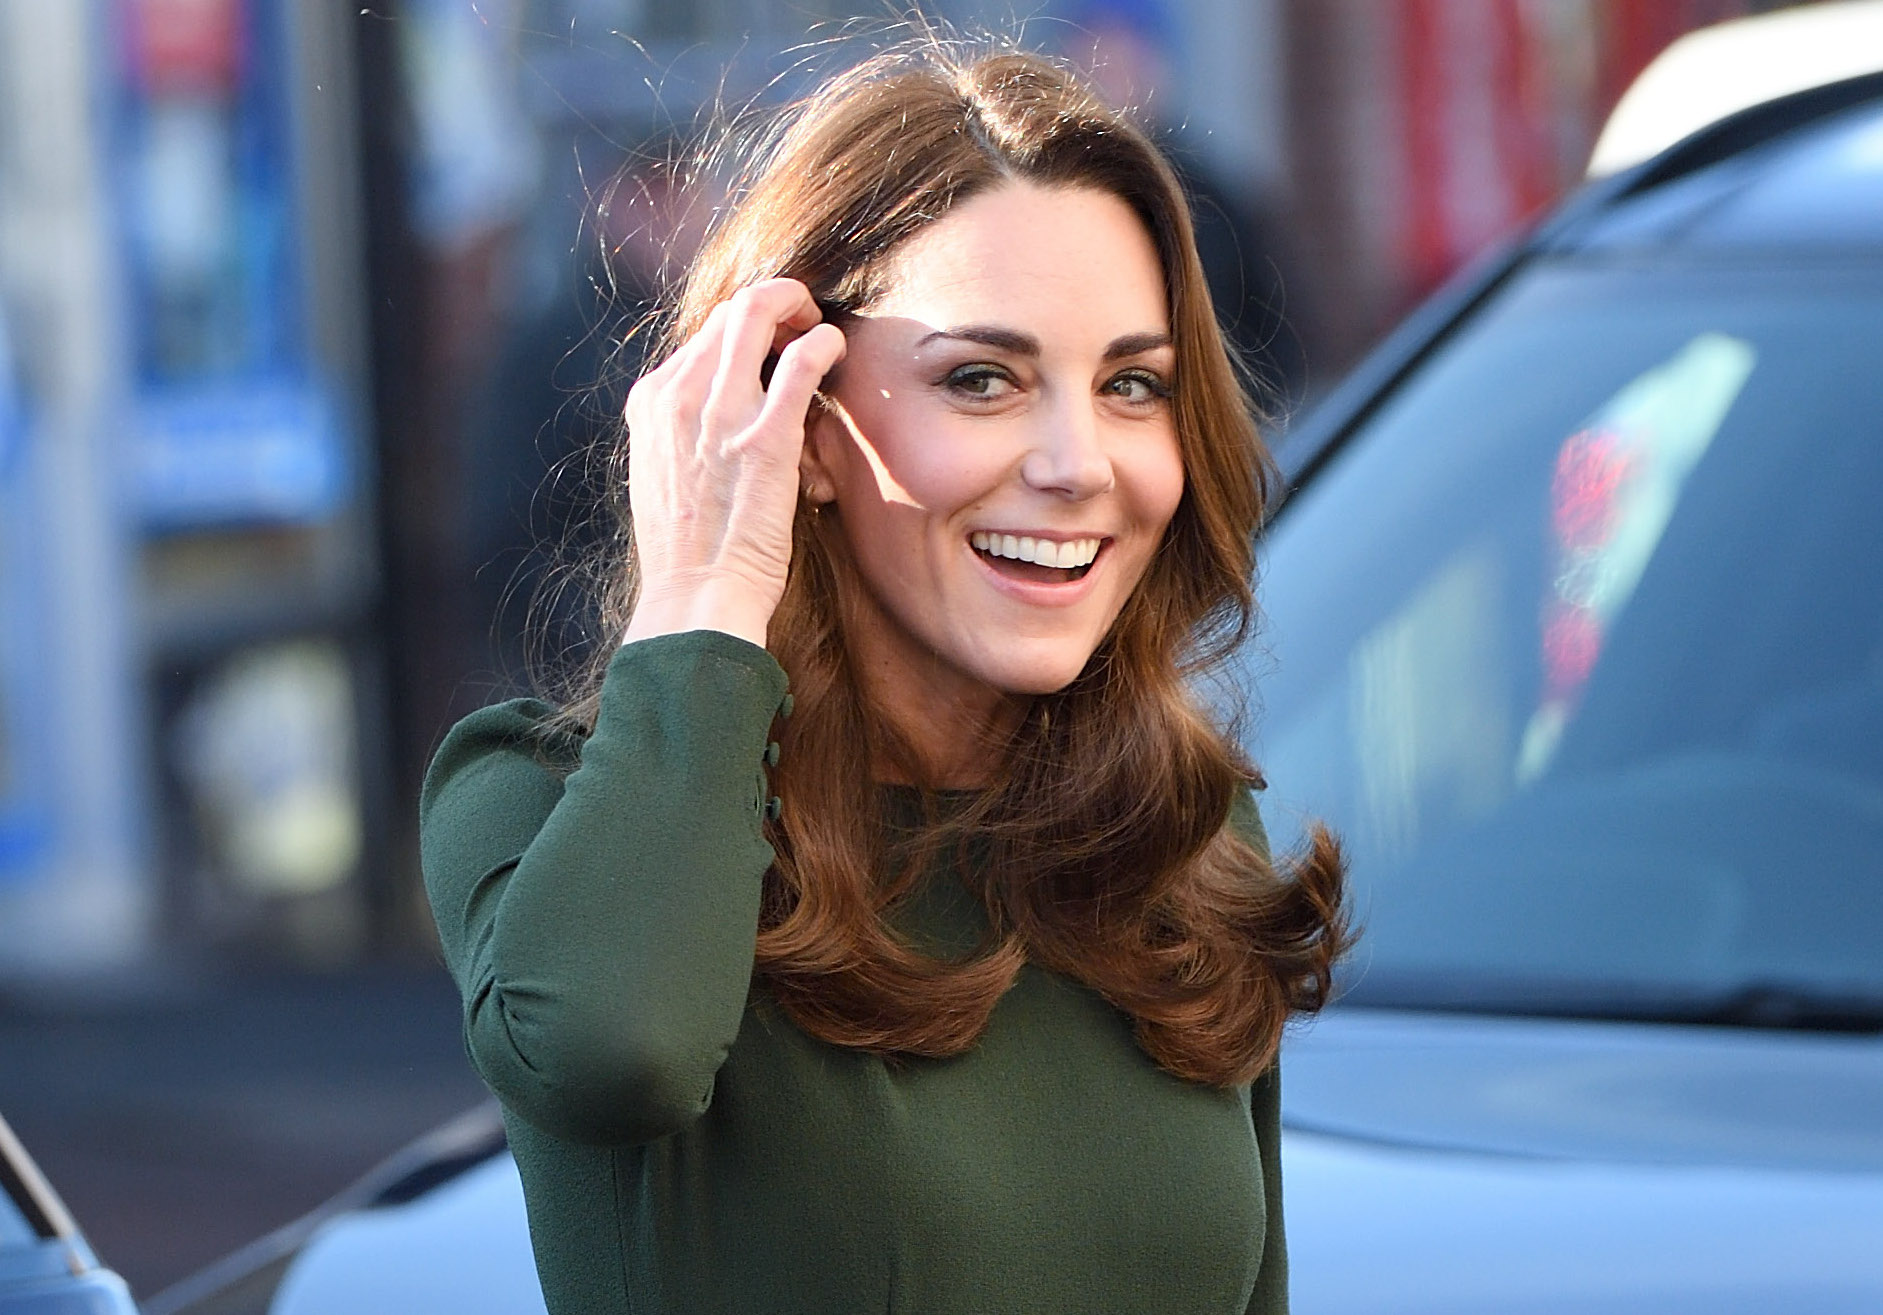 LEWISHAM, ENGLAND - JANUARY 22:  (EMBARGOED FOR PUBLICATION IN UK NEWSPAPERS UNTIL 24 HOURS AFTER CREATE DATE AND TIME) Catherine, Duchess of Cambridge visits the Family Action Charity on January 22, 2019 in Lewisham, England.  (Photo by Karwai Tang/WireImage)